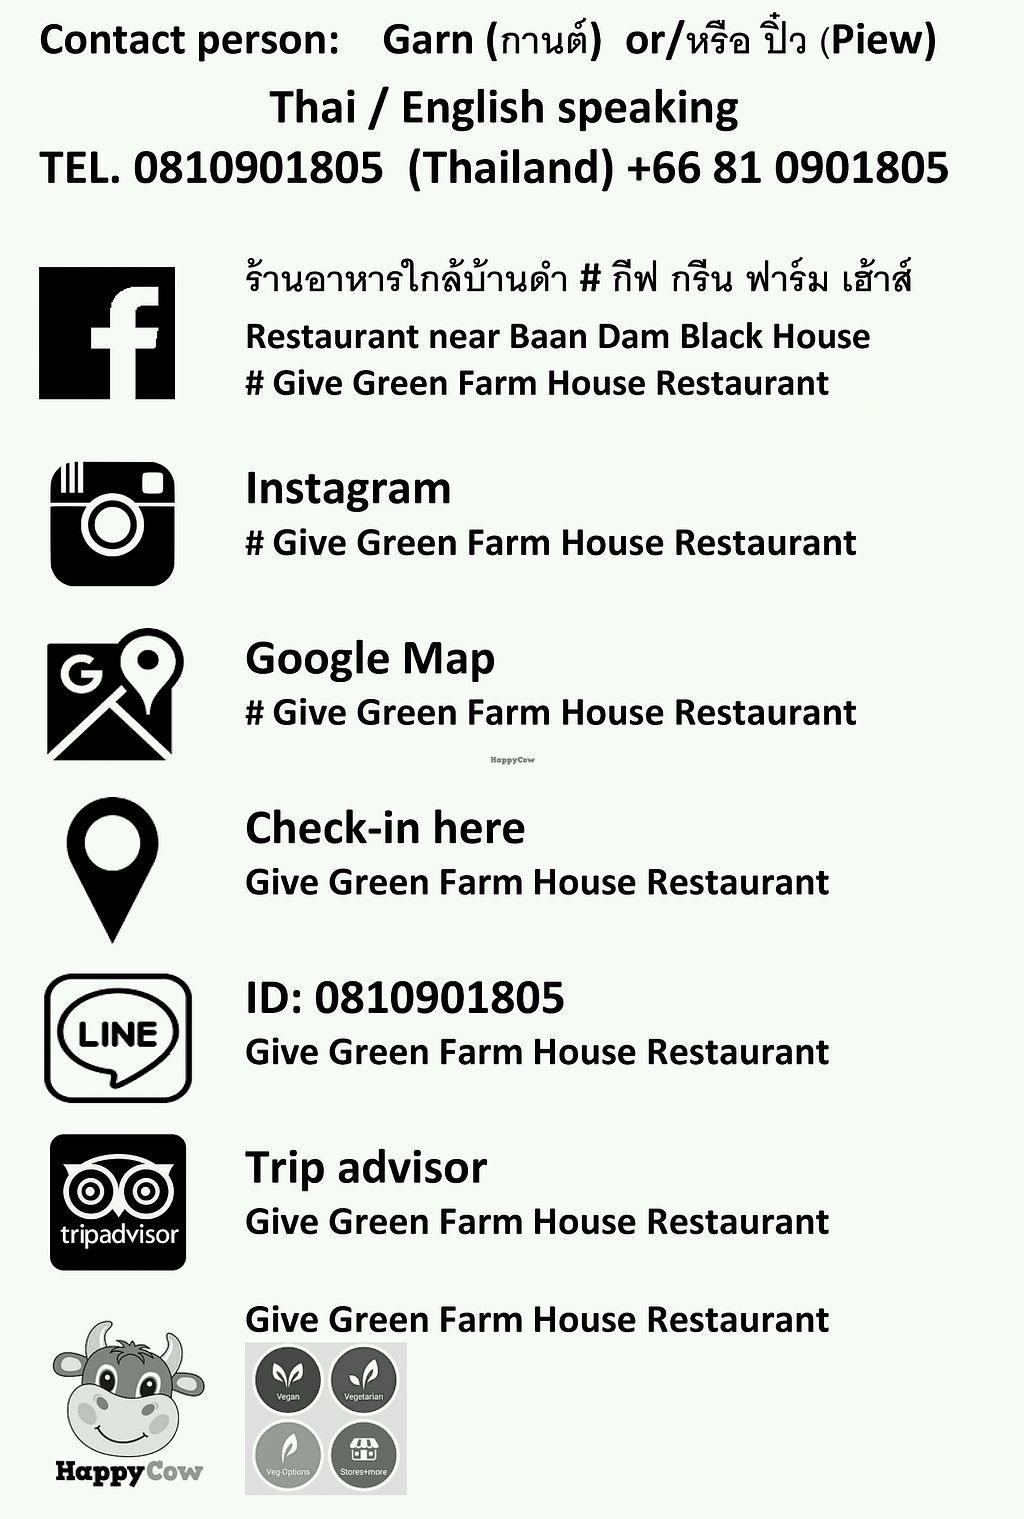 """Photo of Give Green Farm House Restaurant  by <a href=""""/members/profile/GiveGreenFarmHouseRes"""">GiveGreenFarmHouseRes</a> <br/>Find me on another applications <br/> November 17, 2017  - <a href='/contact/abuse/image/104911/326459'>Report</a>"""